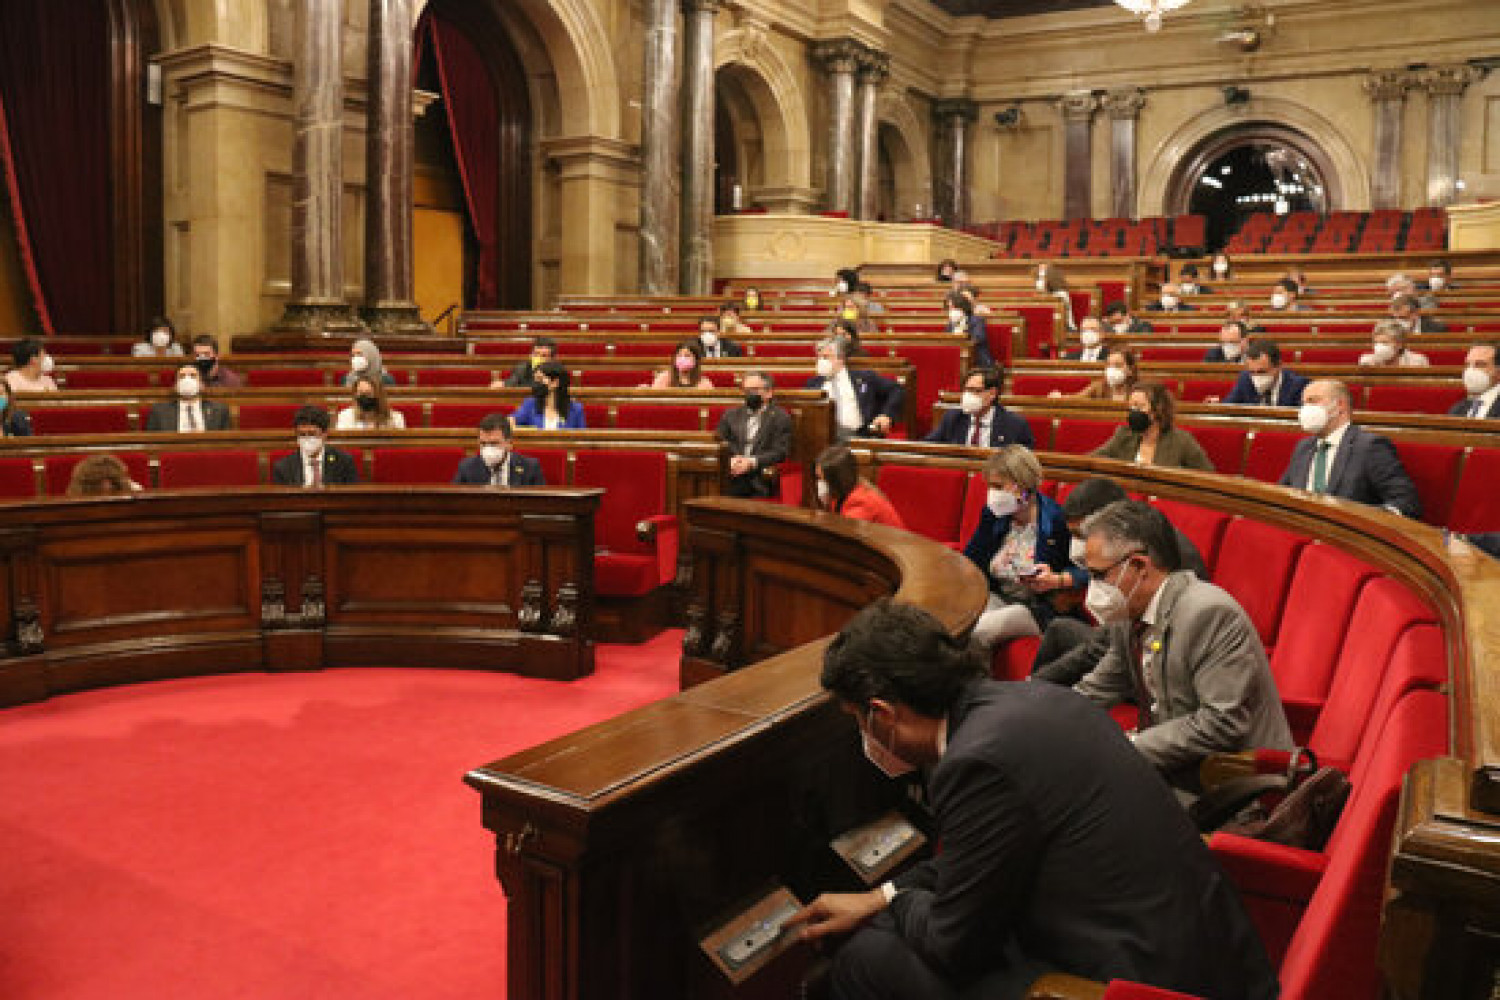 Members of the Catalan parliament during a vote in the chamber (by Mariona Puig)